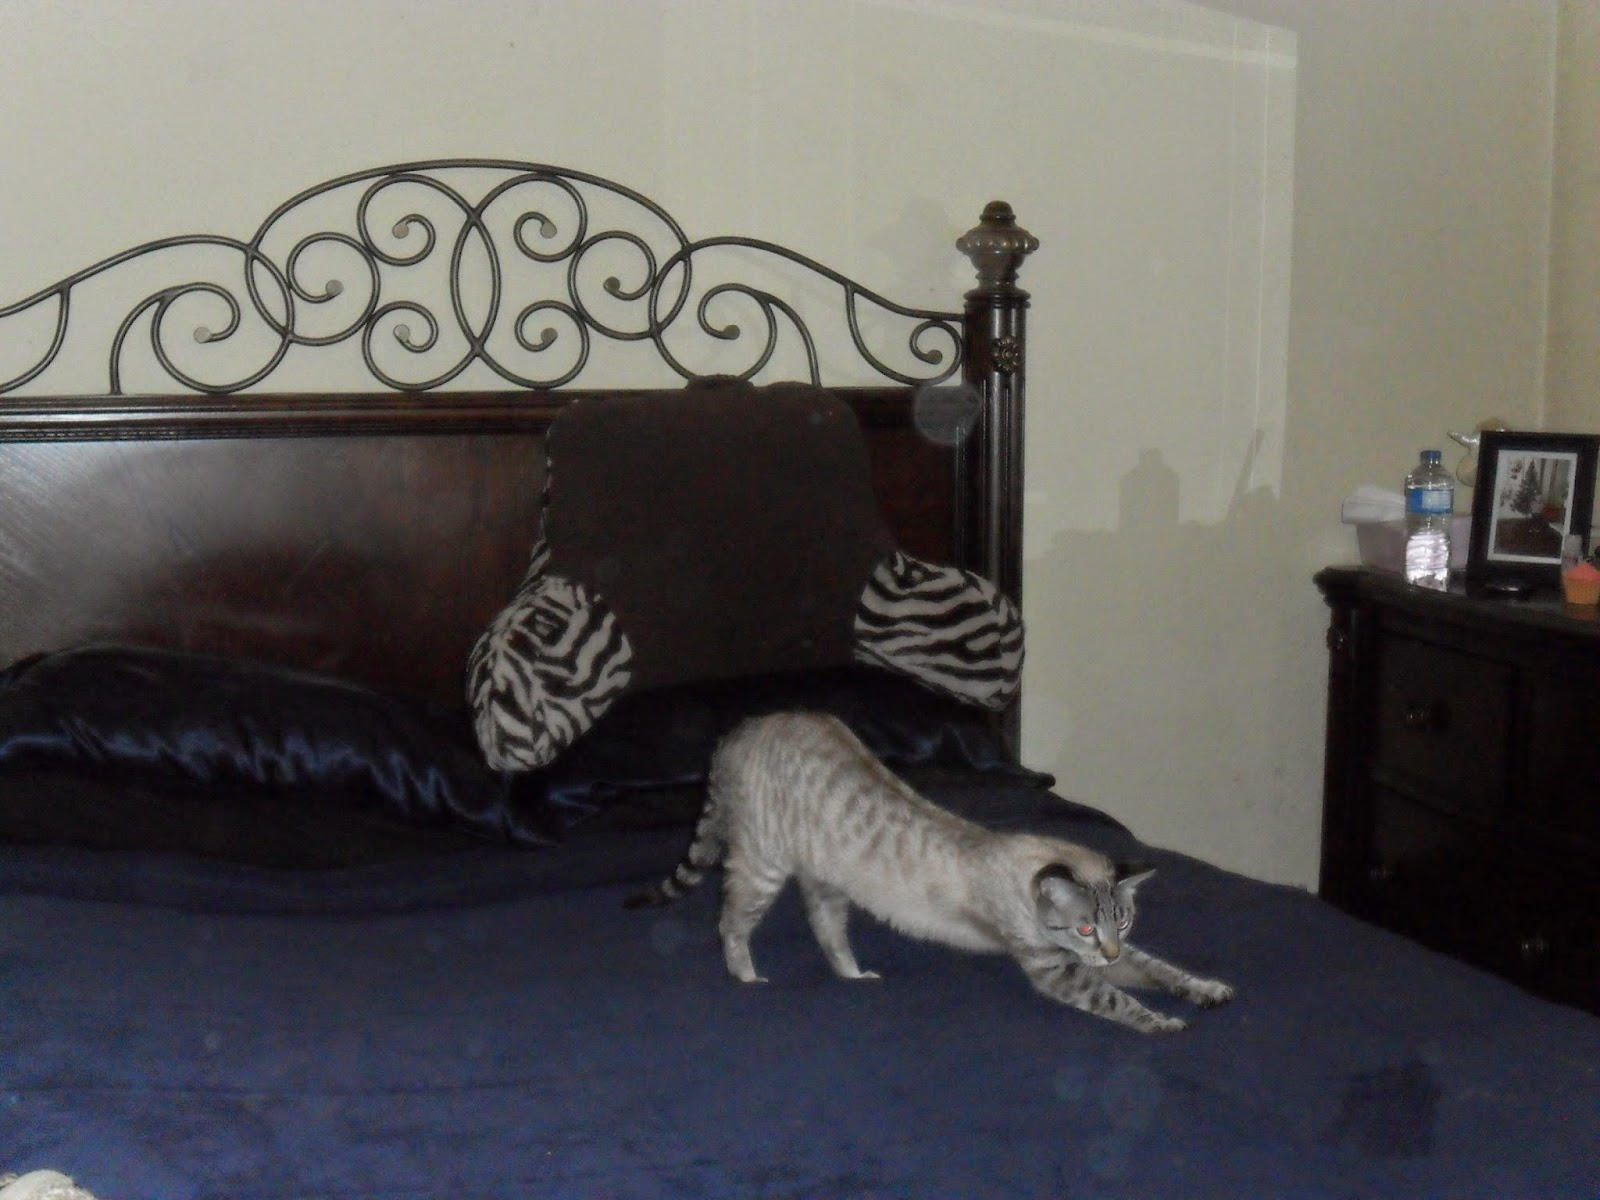 Bed Rest Zebra Print. Sleeping Partners Review.